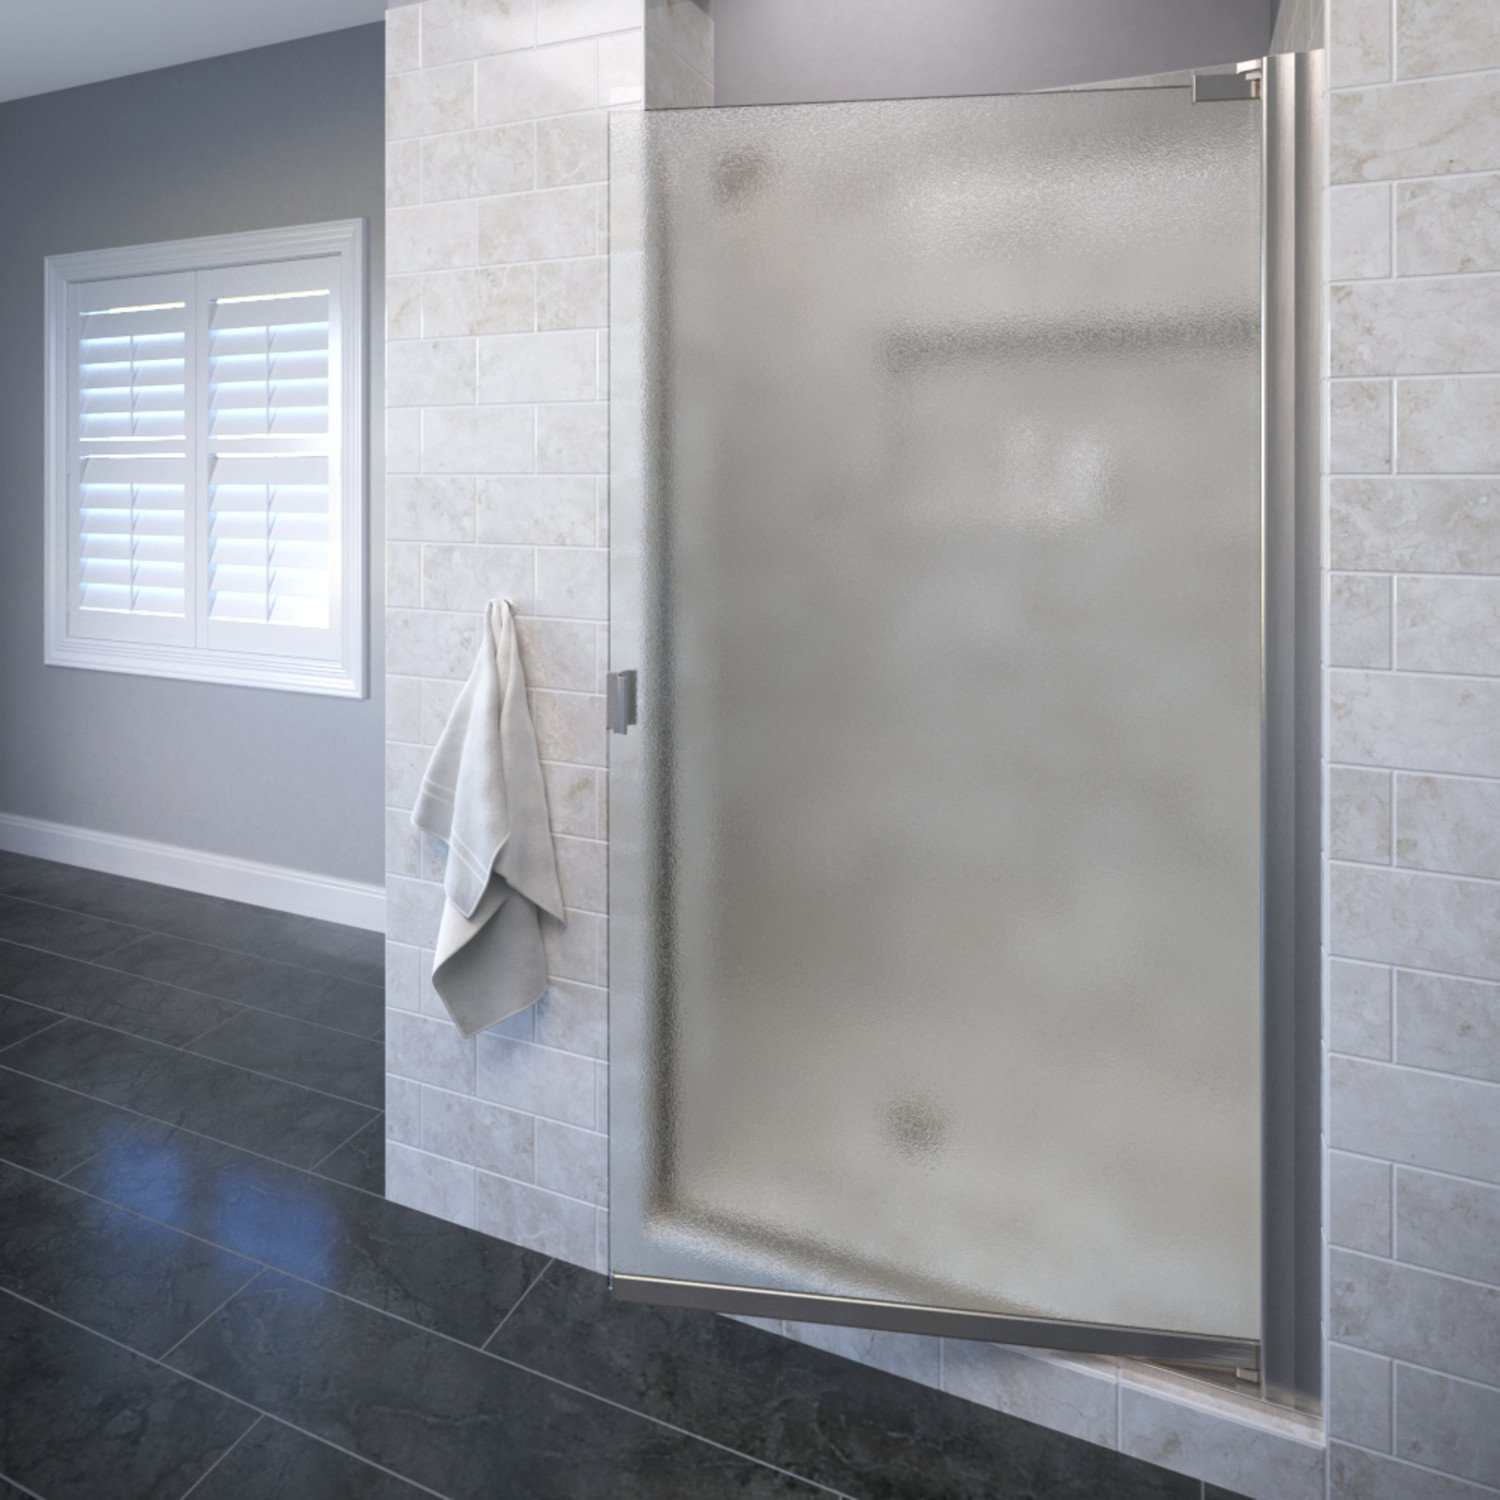 Basco Classic 31.75 to 33.25 in. width, Semi-Frameless Pivot Shower Door, Obscure Glass, Brushed Nickel Finish